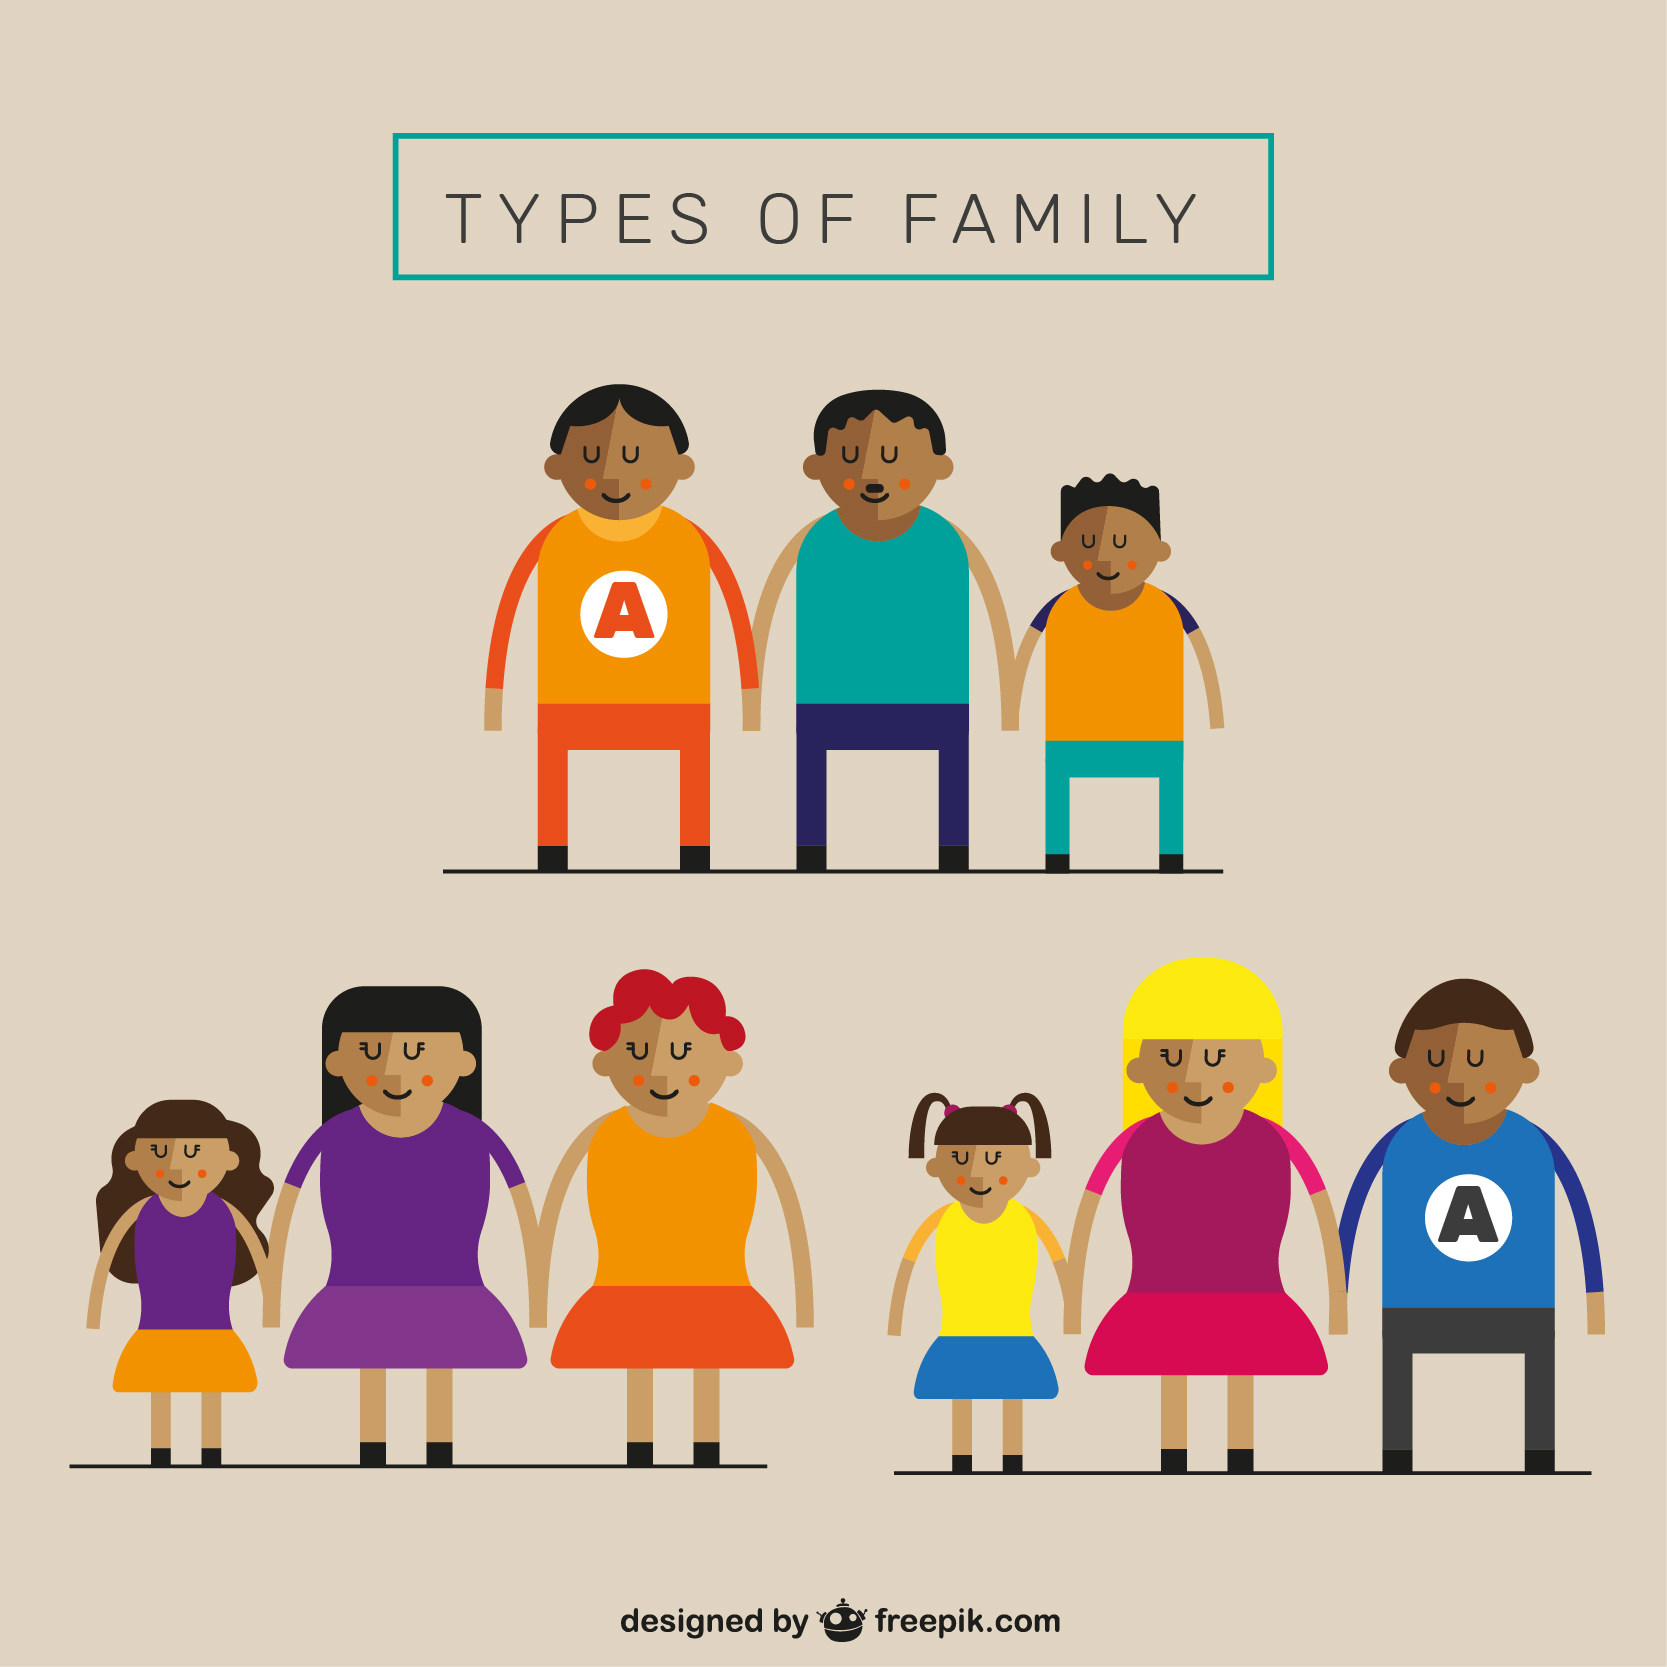 social class and the family In such a case, social class refers to socio-cultural aspects of one's life, namely the traits, behaviors, knowledge, and lifestyle that one is socialized into by one's family this is why class descriptors like low, working, upper, or high can have social as well as economic implications for how we understand the person described.